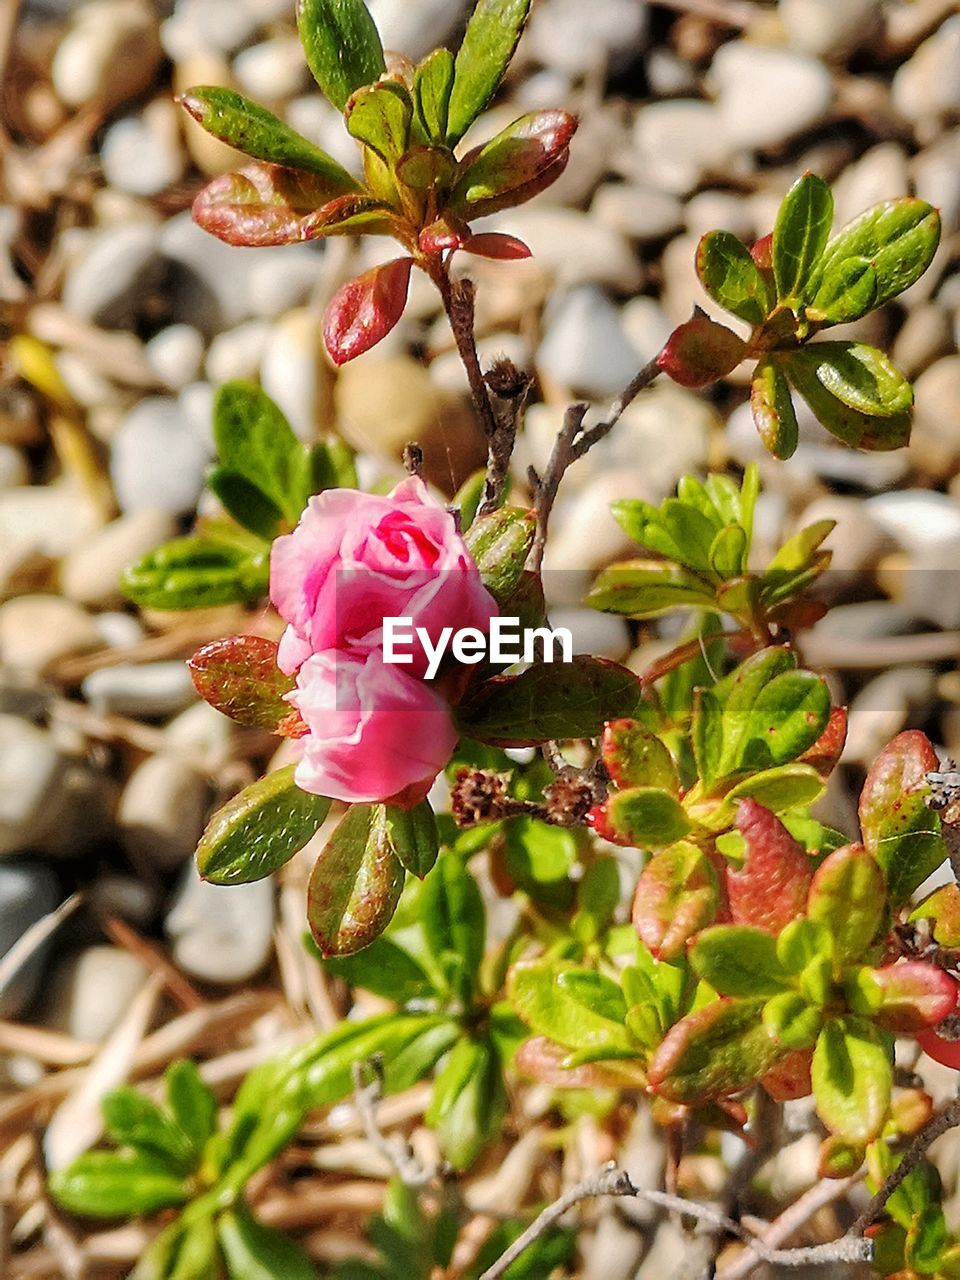 flower, plant, beauty in nature, growth, fragility, close-up, freshness, flowering plant, vulnerability, plant part, leaf, petal, pink color, nature, focus on foreground, inflorescence, flower head, no people, day, outdoors